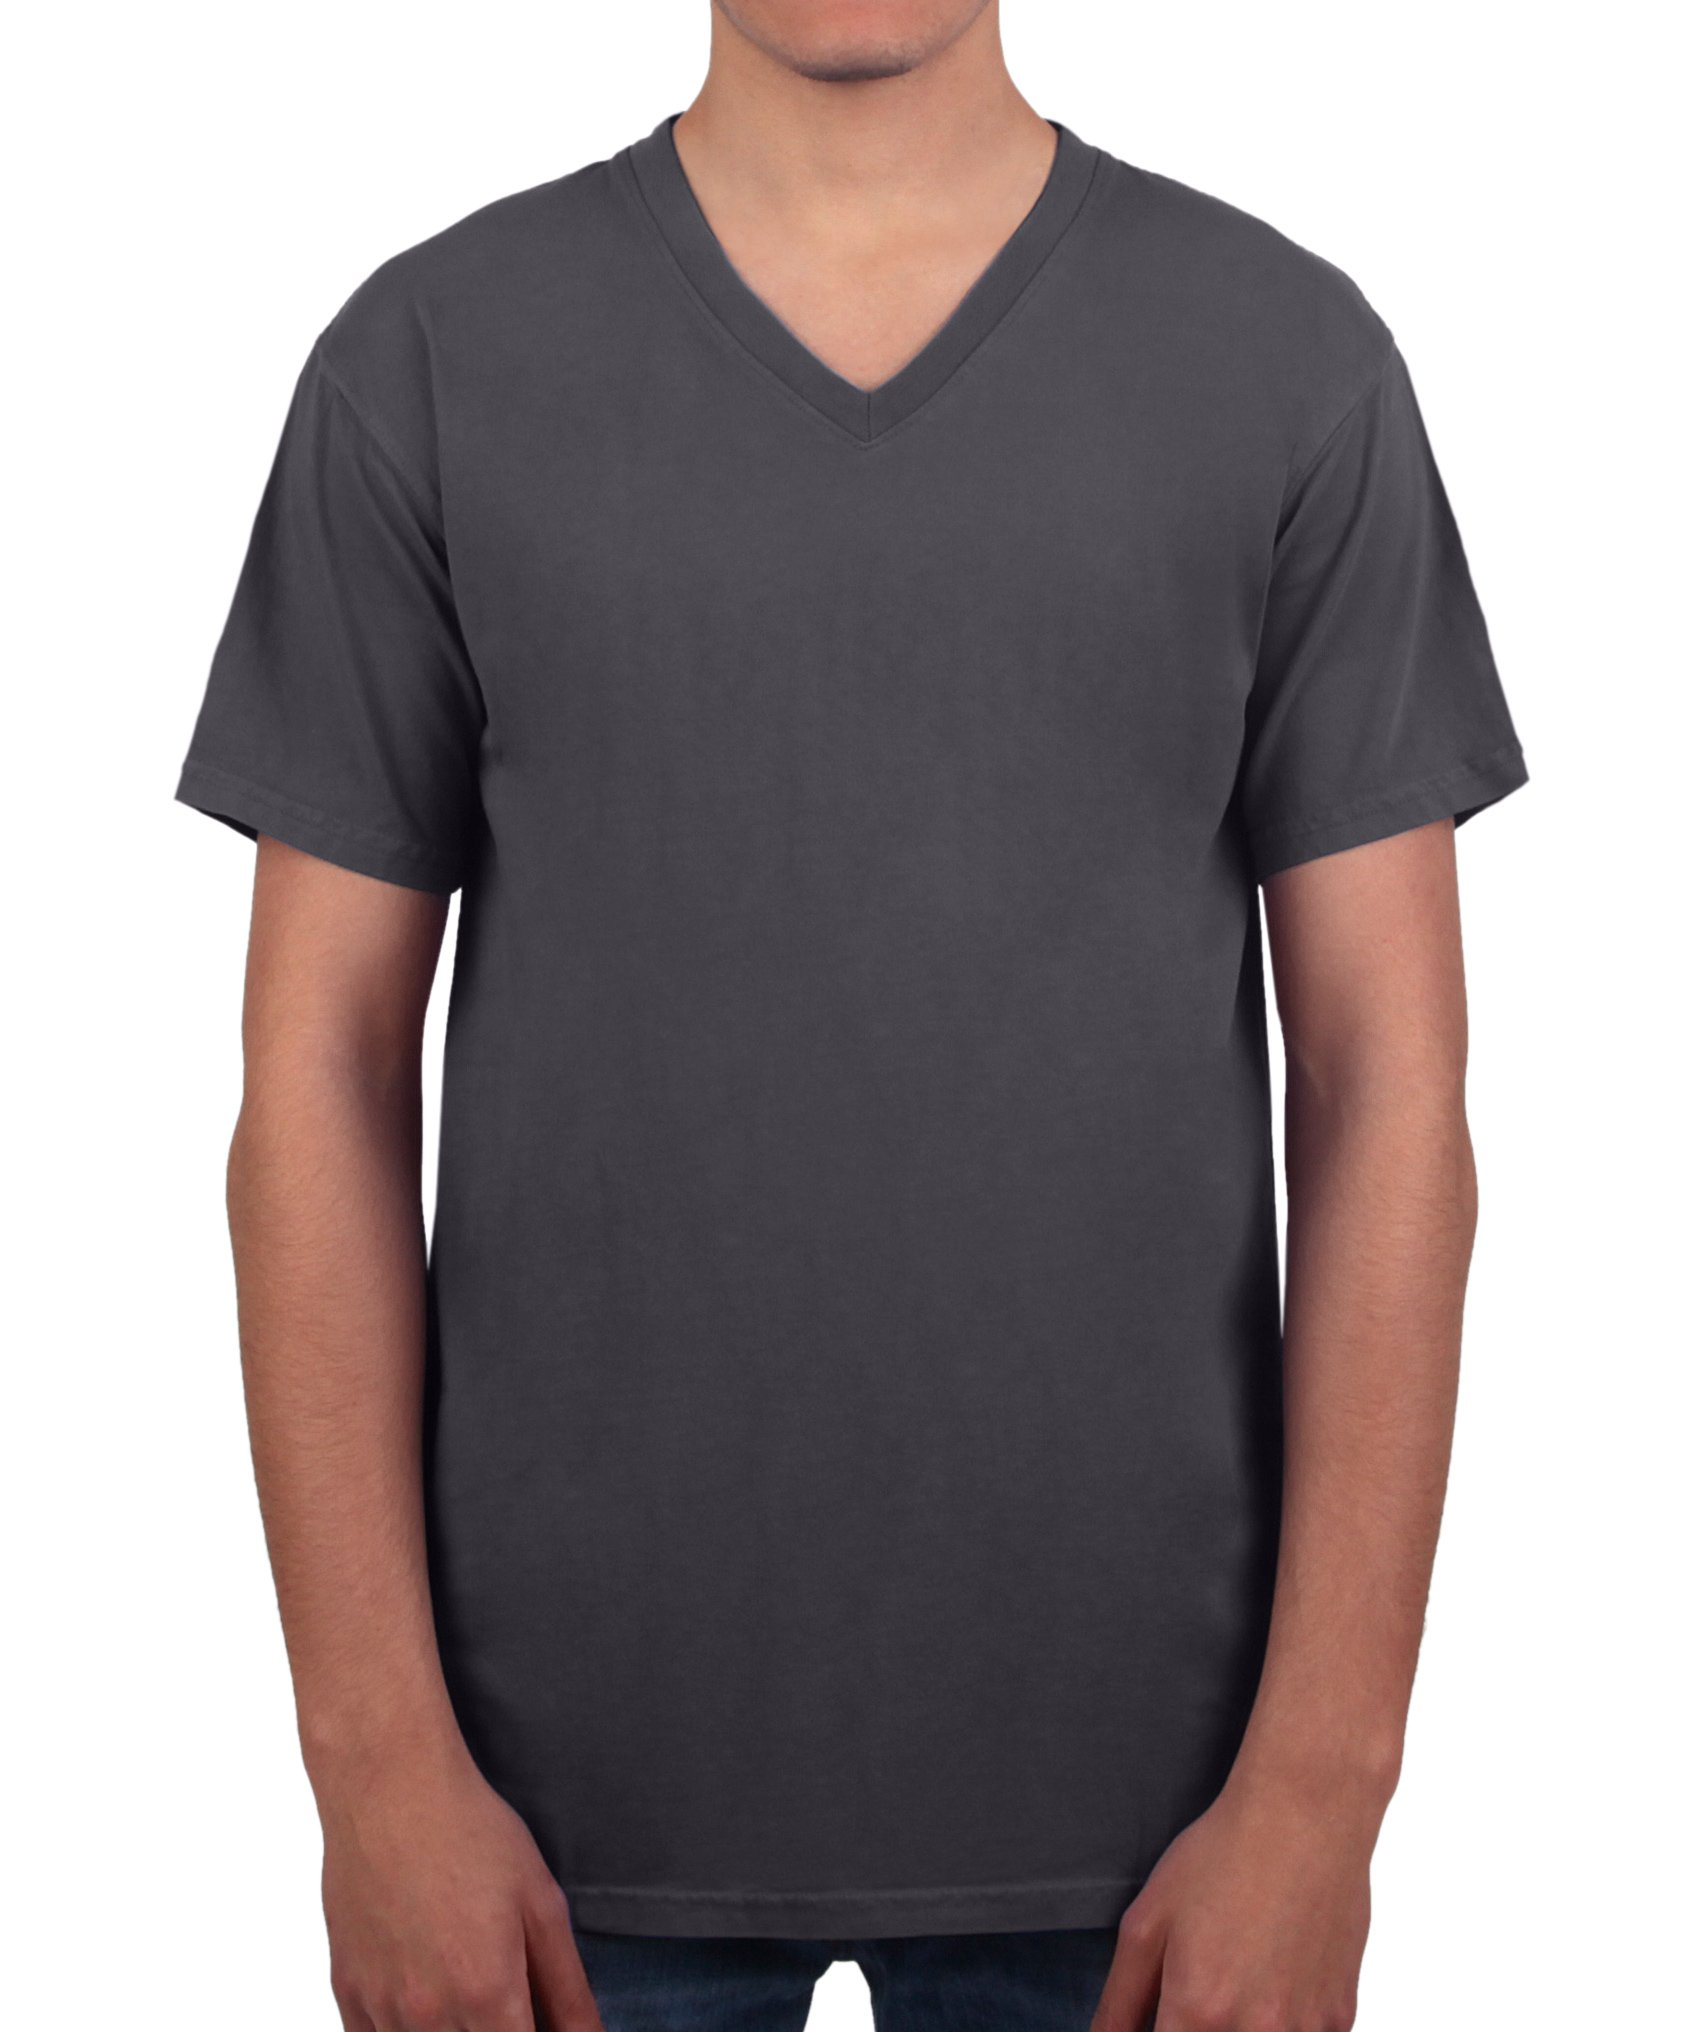 Have It Tall Men's V Neck T Shirt Premium Ringspun Cotton Made In USA ST - 2XLT Charcoal Small